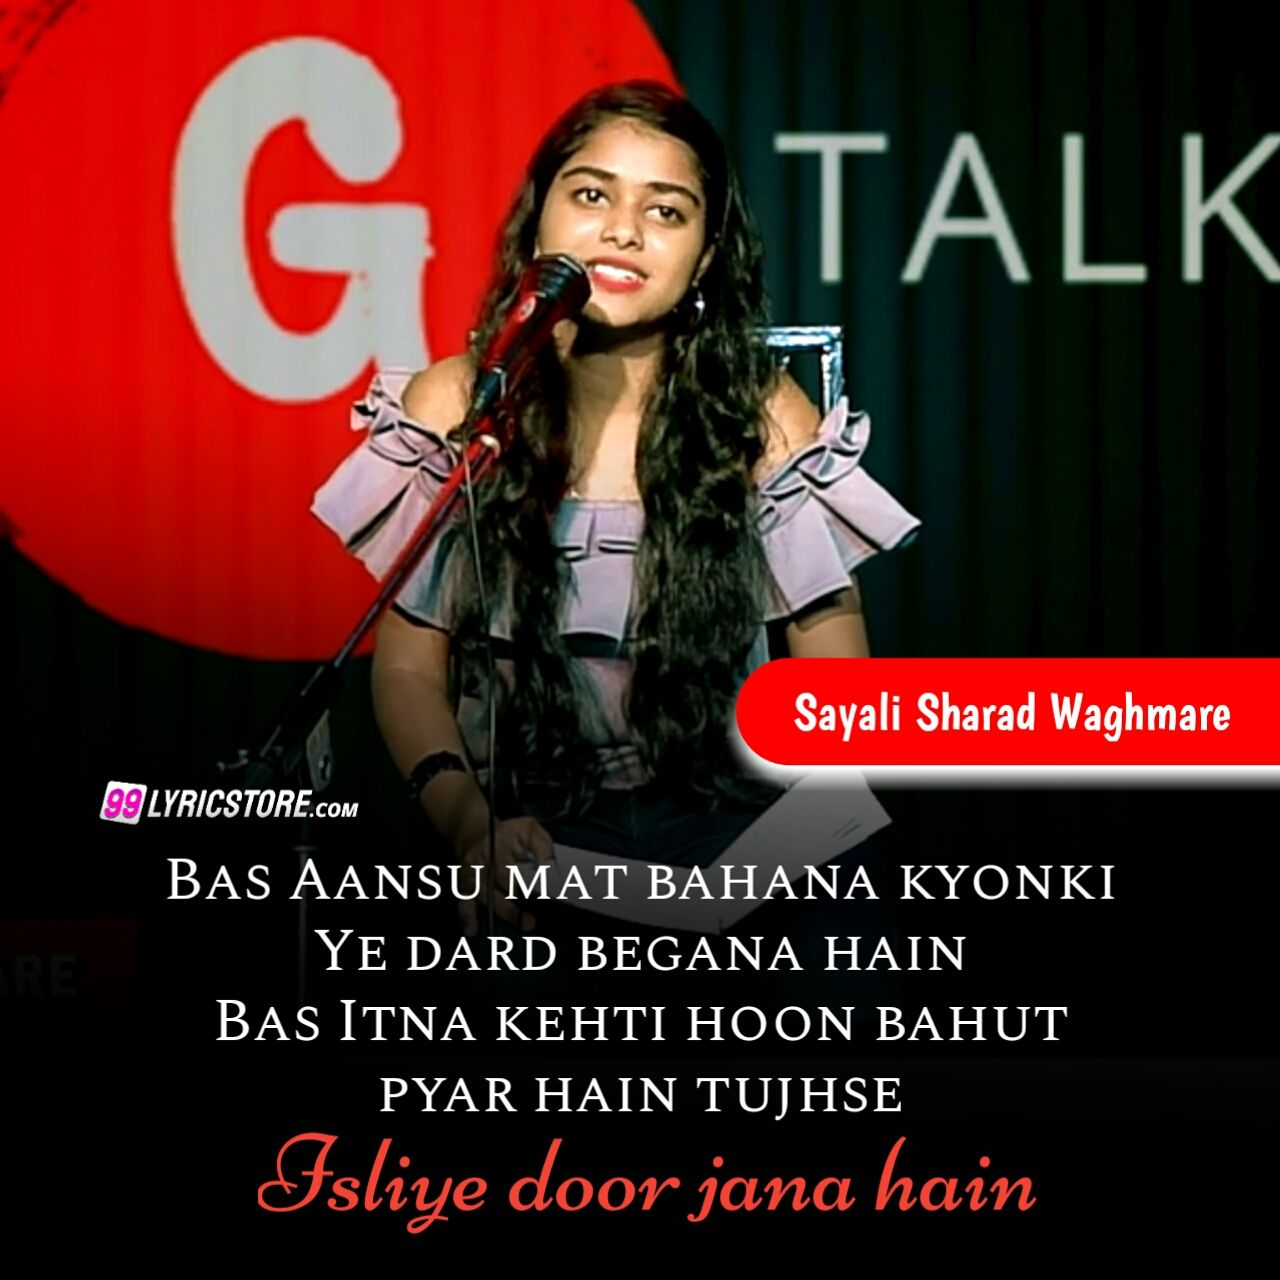 'Bahut Pyar Hai Tujhse Isliye Dur Jana Hai' Poetry has written and performed by Sayali Sharad Waghmare on G Talk's Platform.